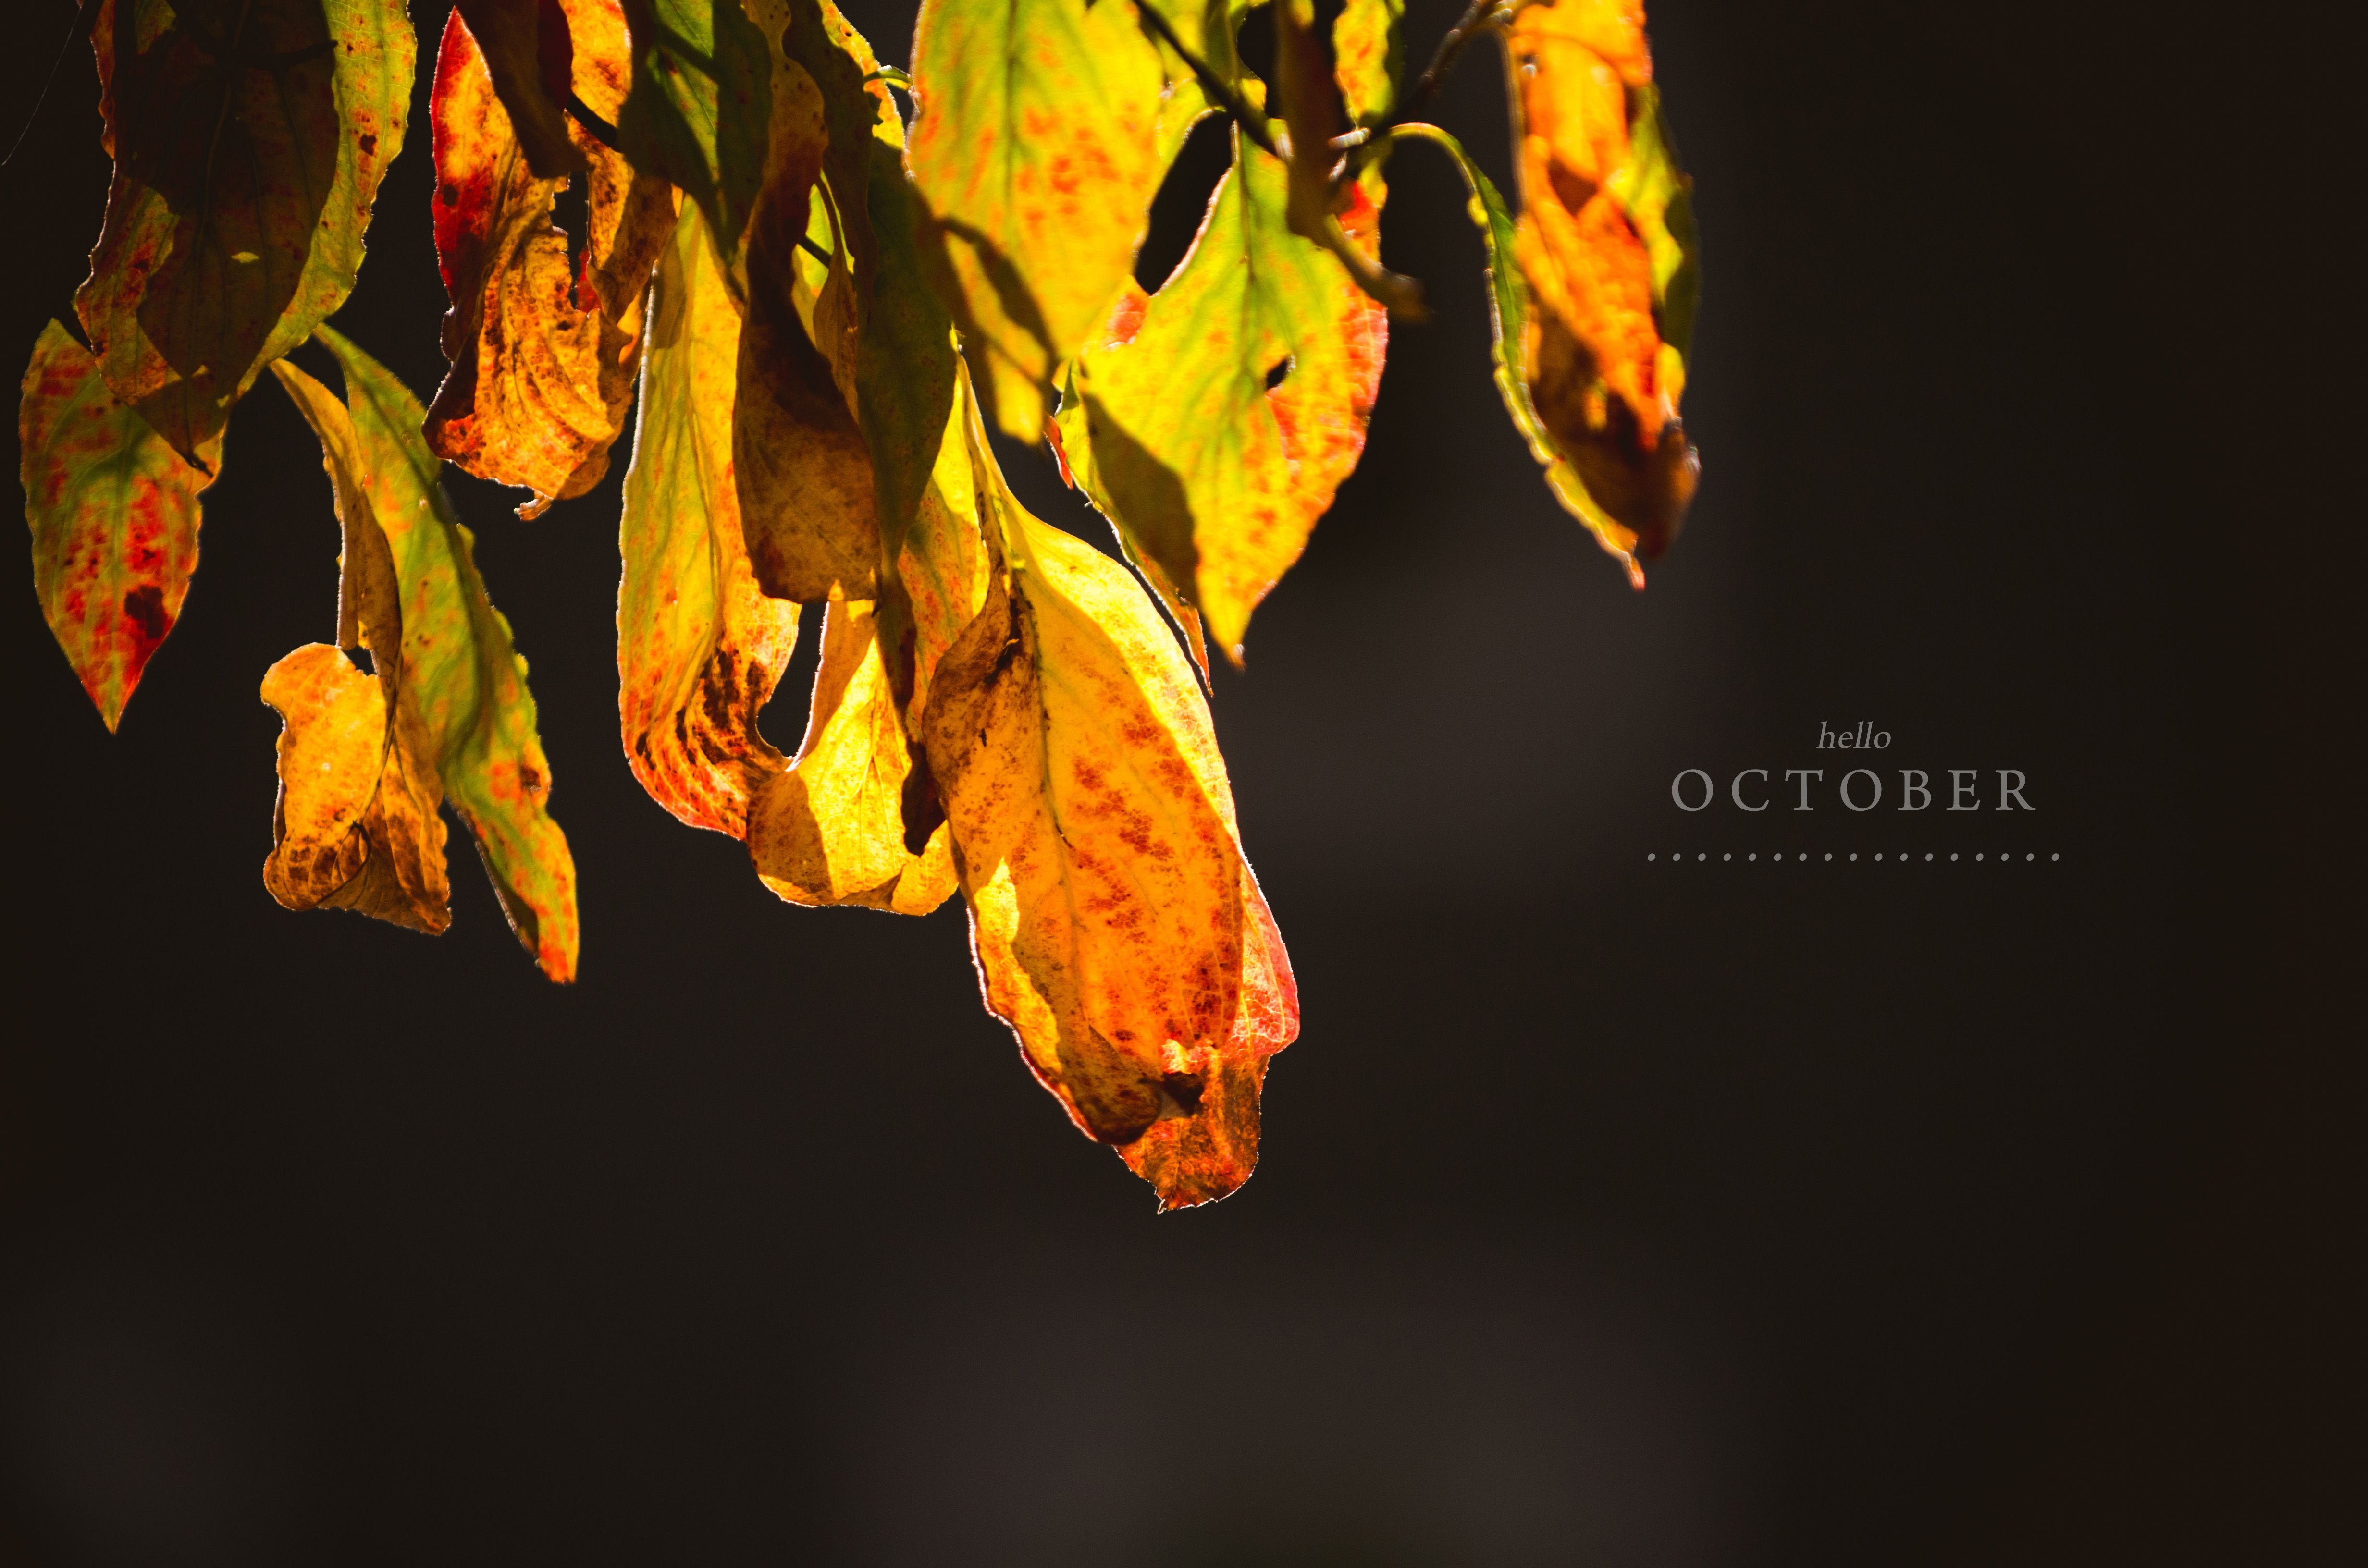 October Hello photography pictures exclusive photo